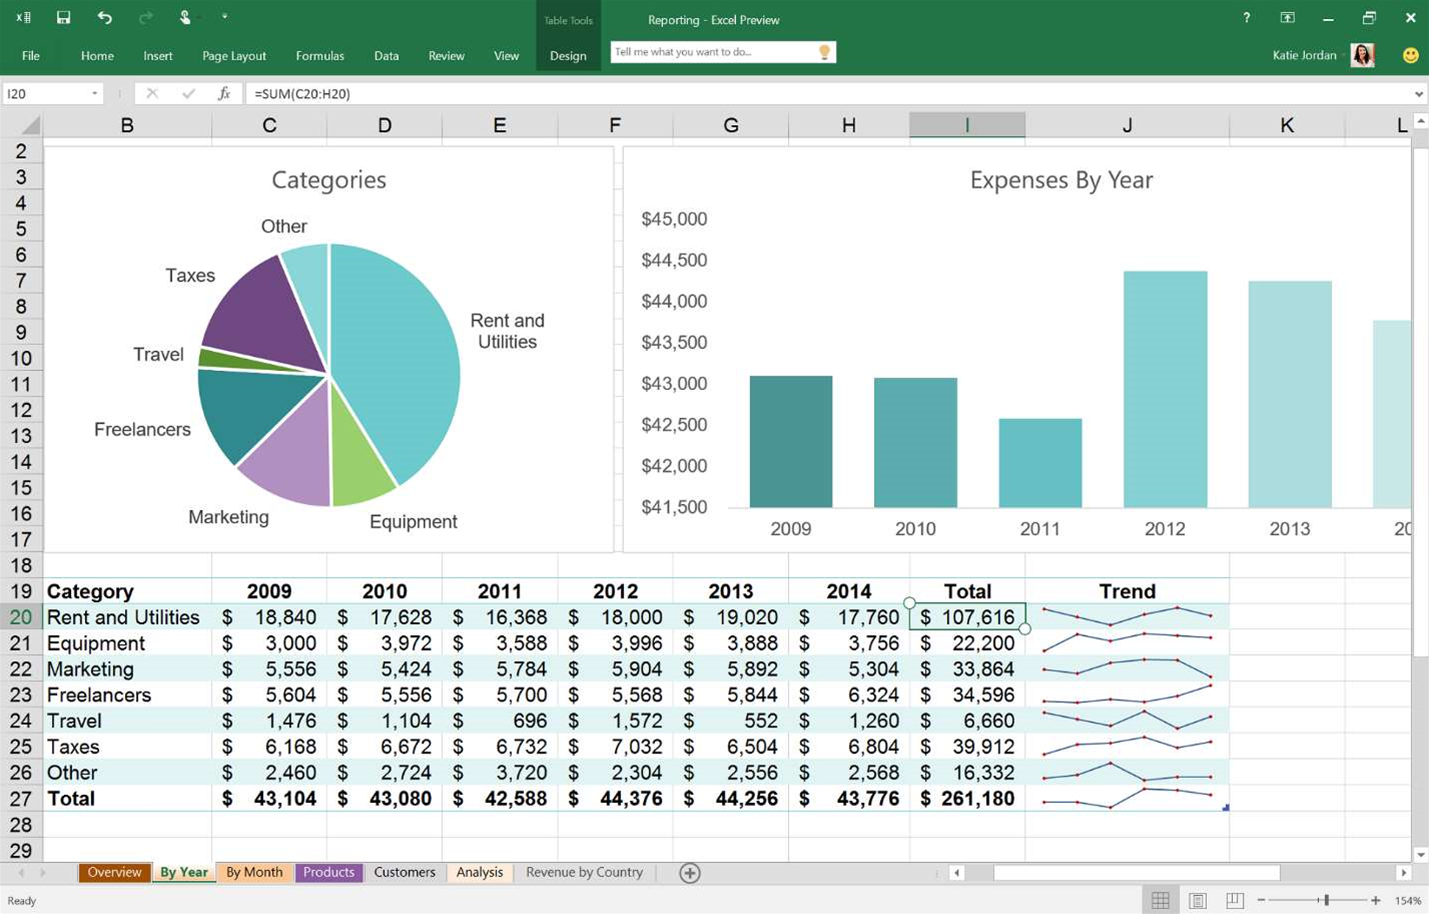 Microsoft Office 2016 Public Preview out now